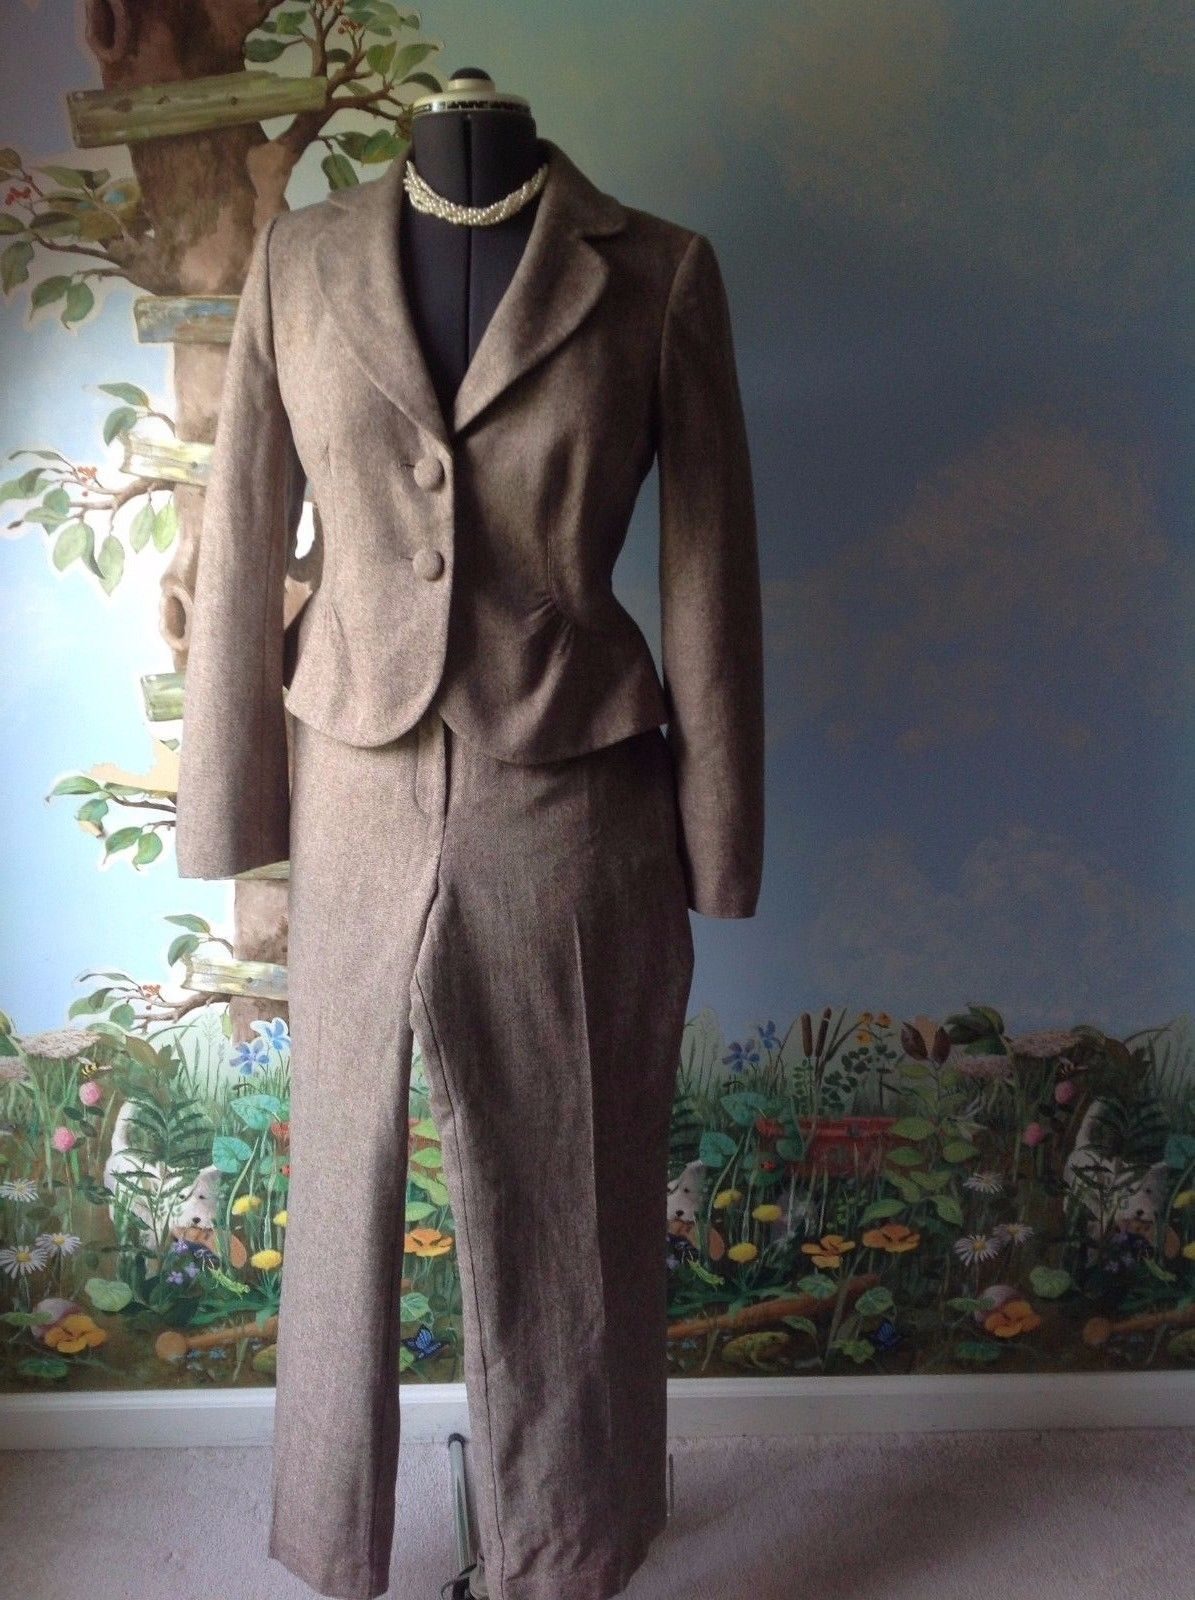 Ann Taylor Petite Brown Long Sleeve Fully Lined Pant Suit Size 6/12P  - $19.79